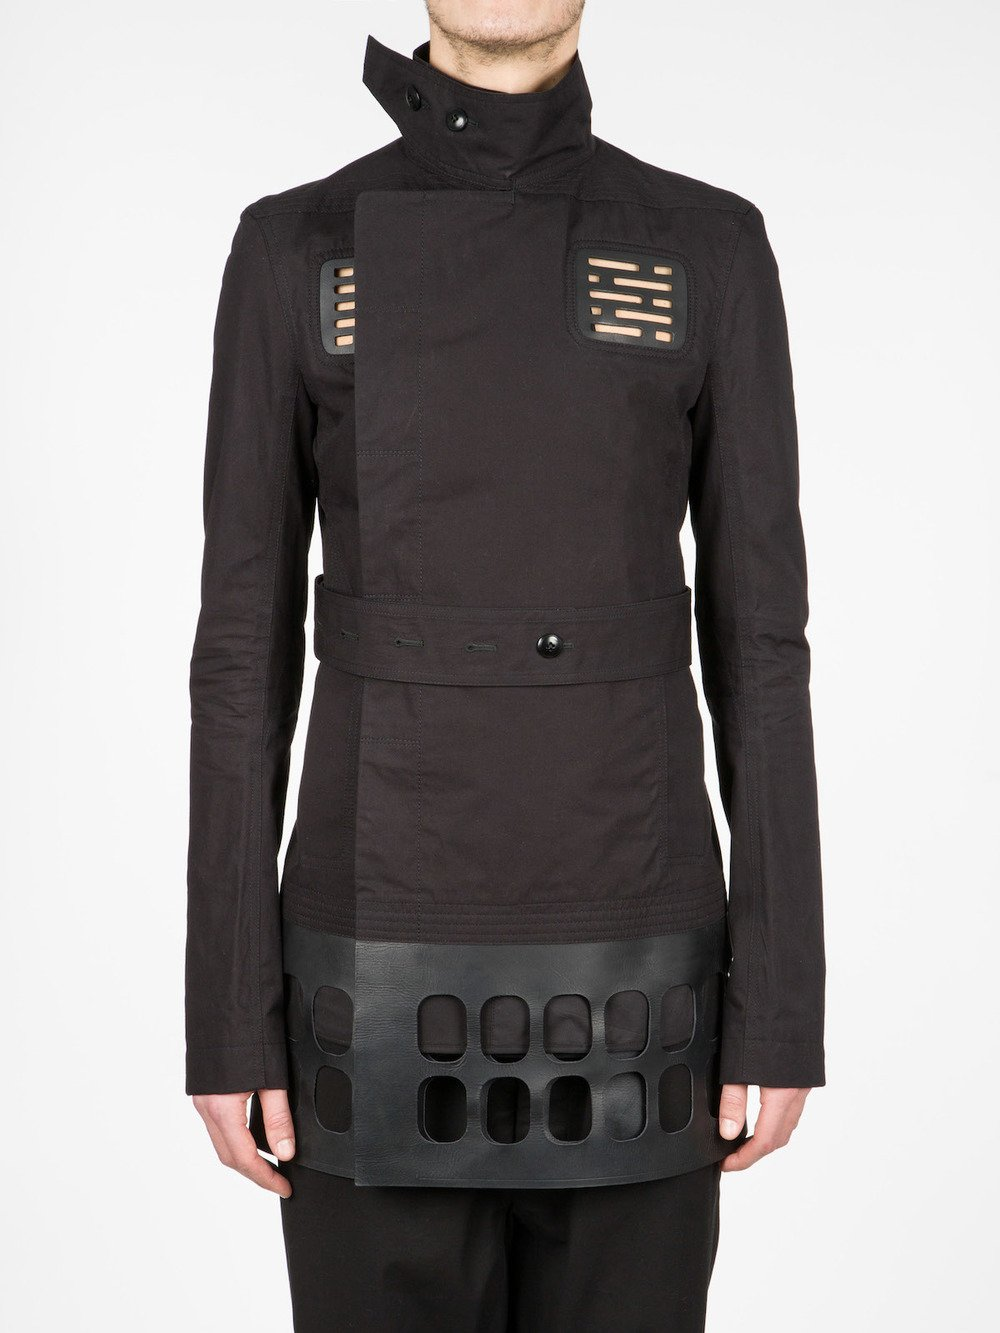 RICK OWENS - SAFETY PEATRENCH